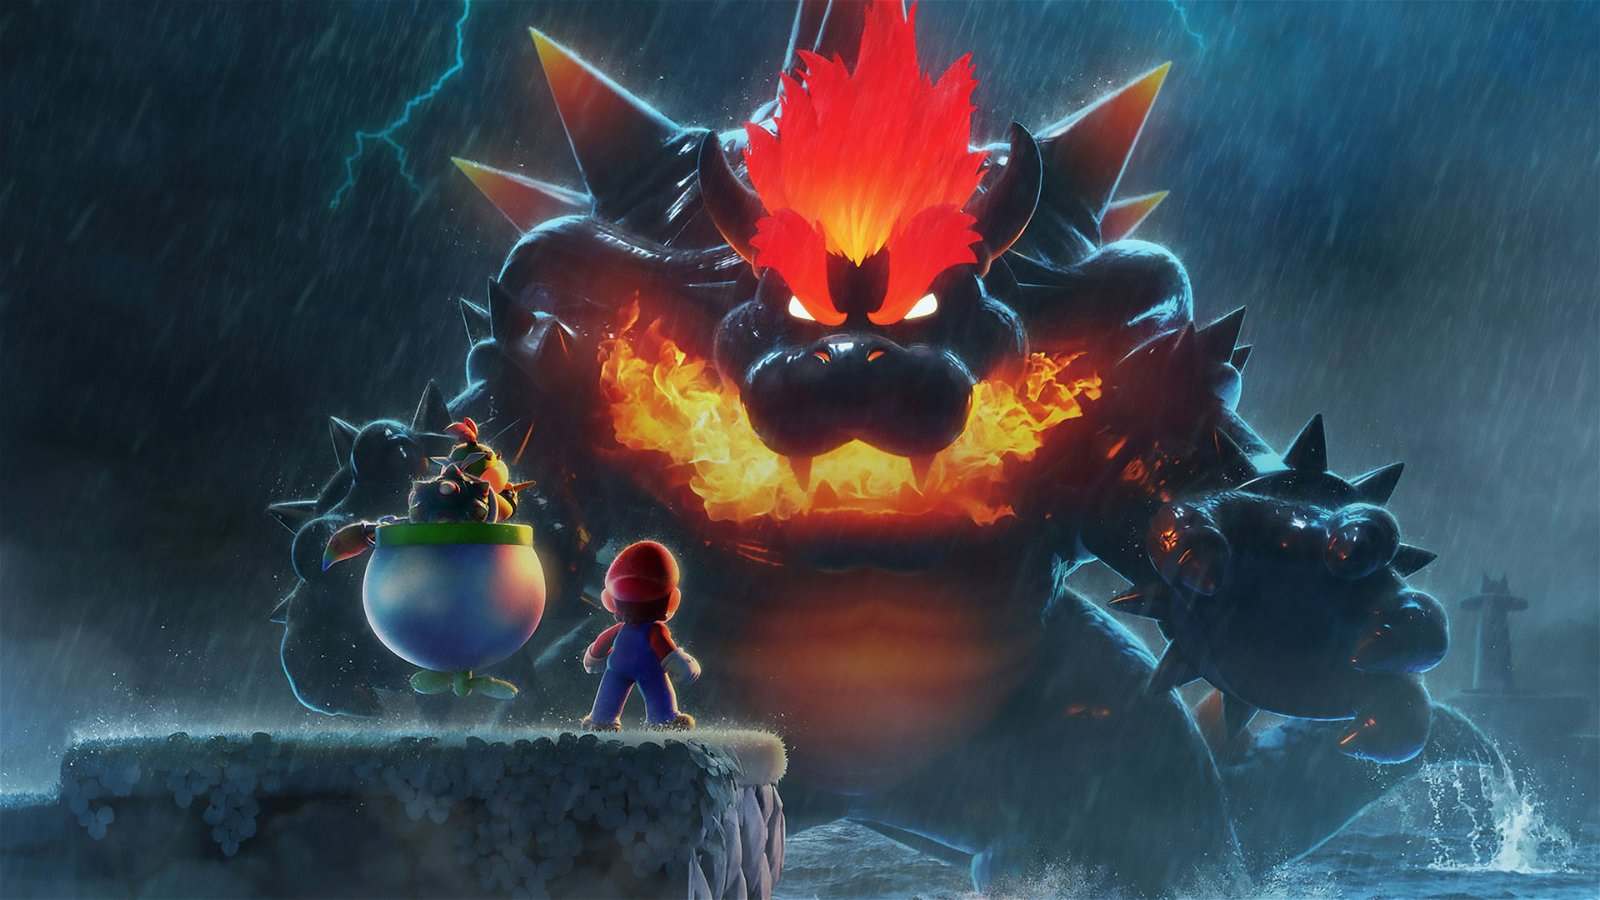 Super Mario 3D World + Bowser's Fury Review 10